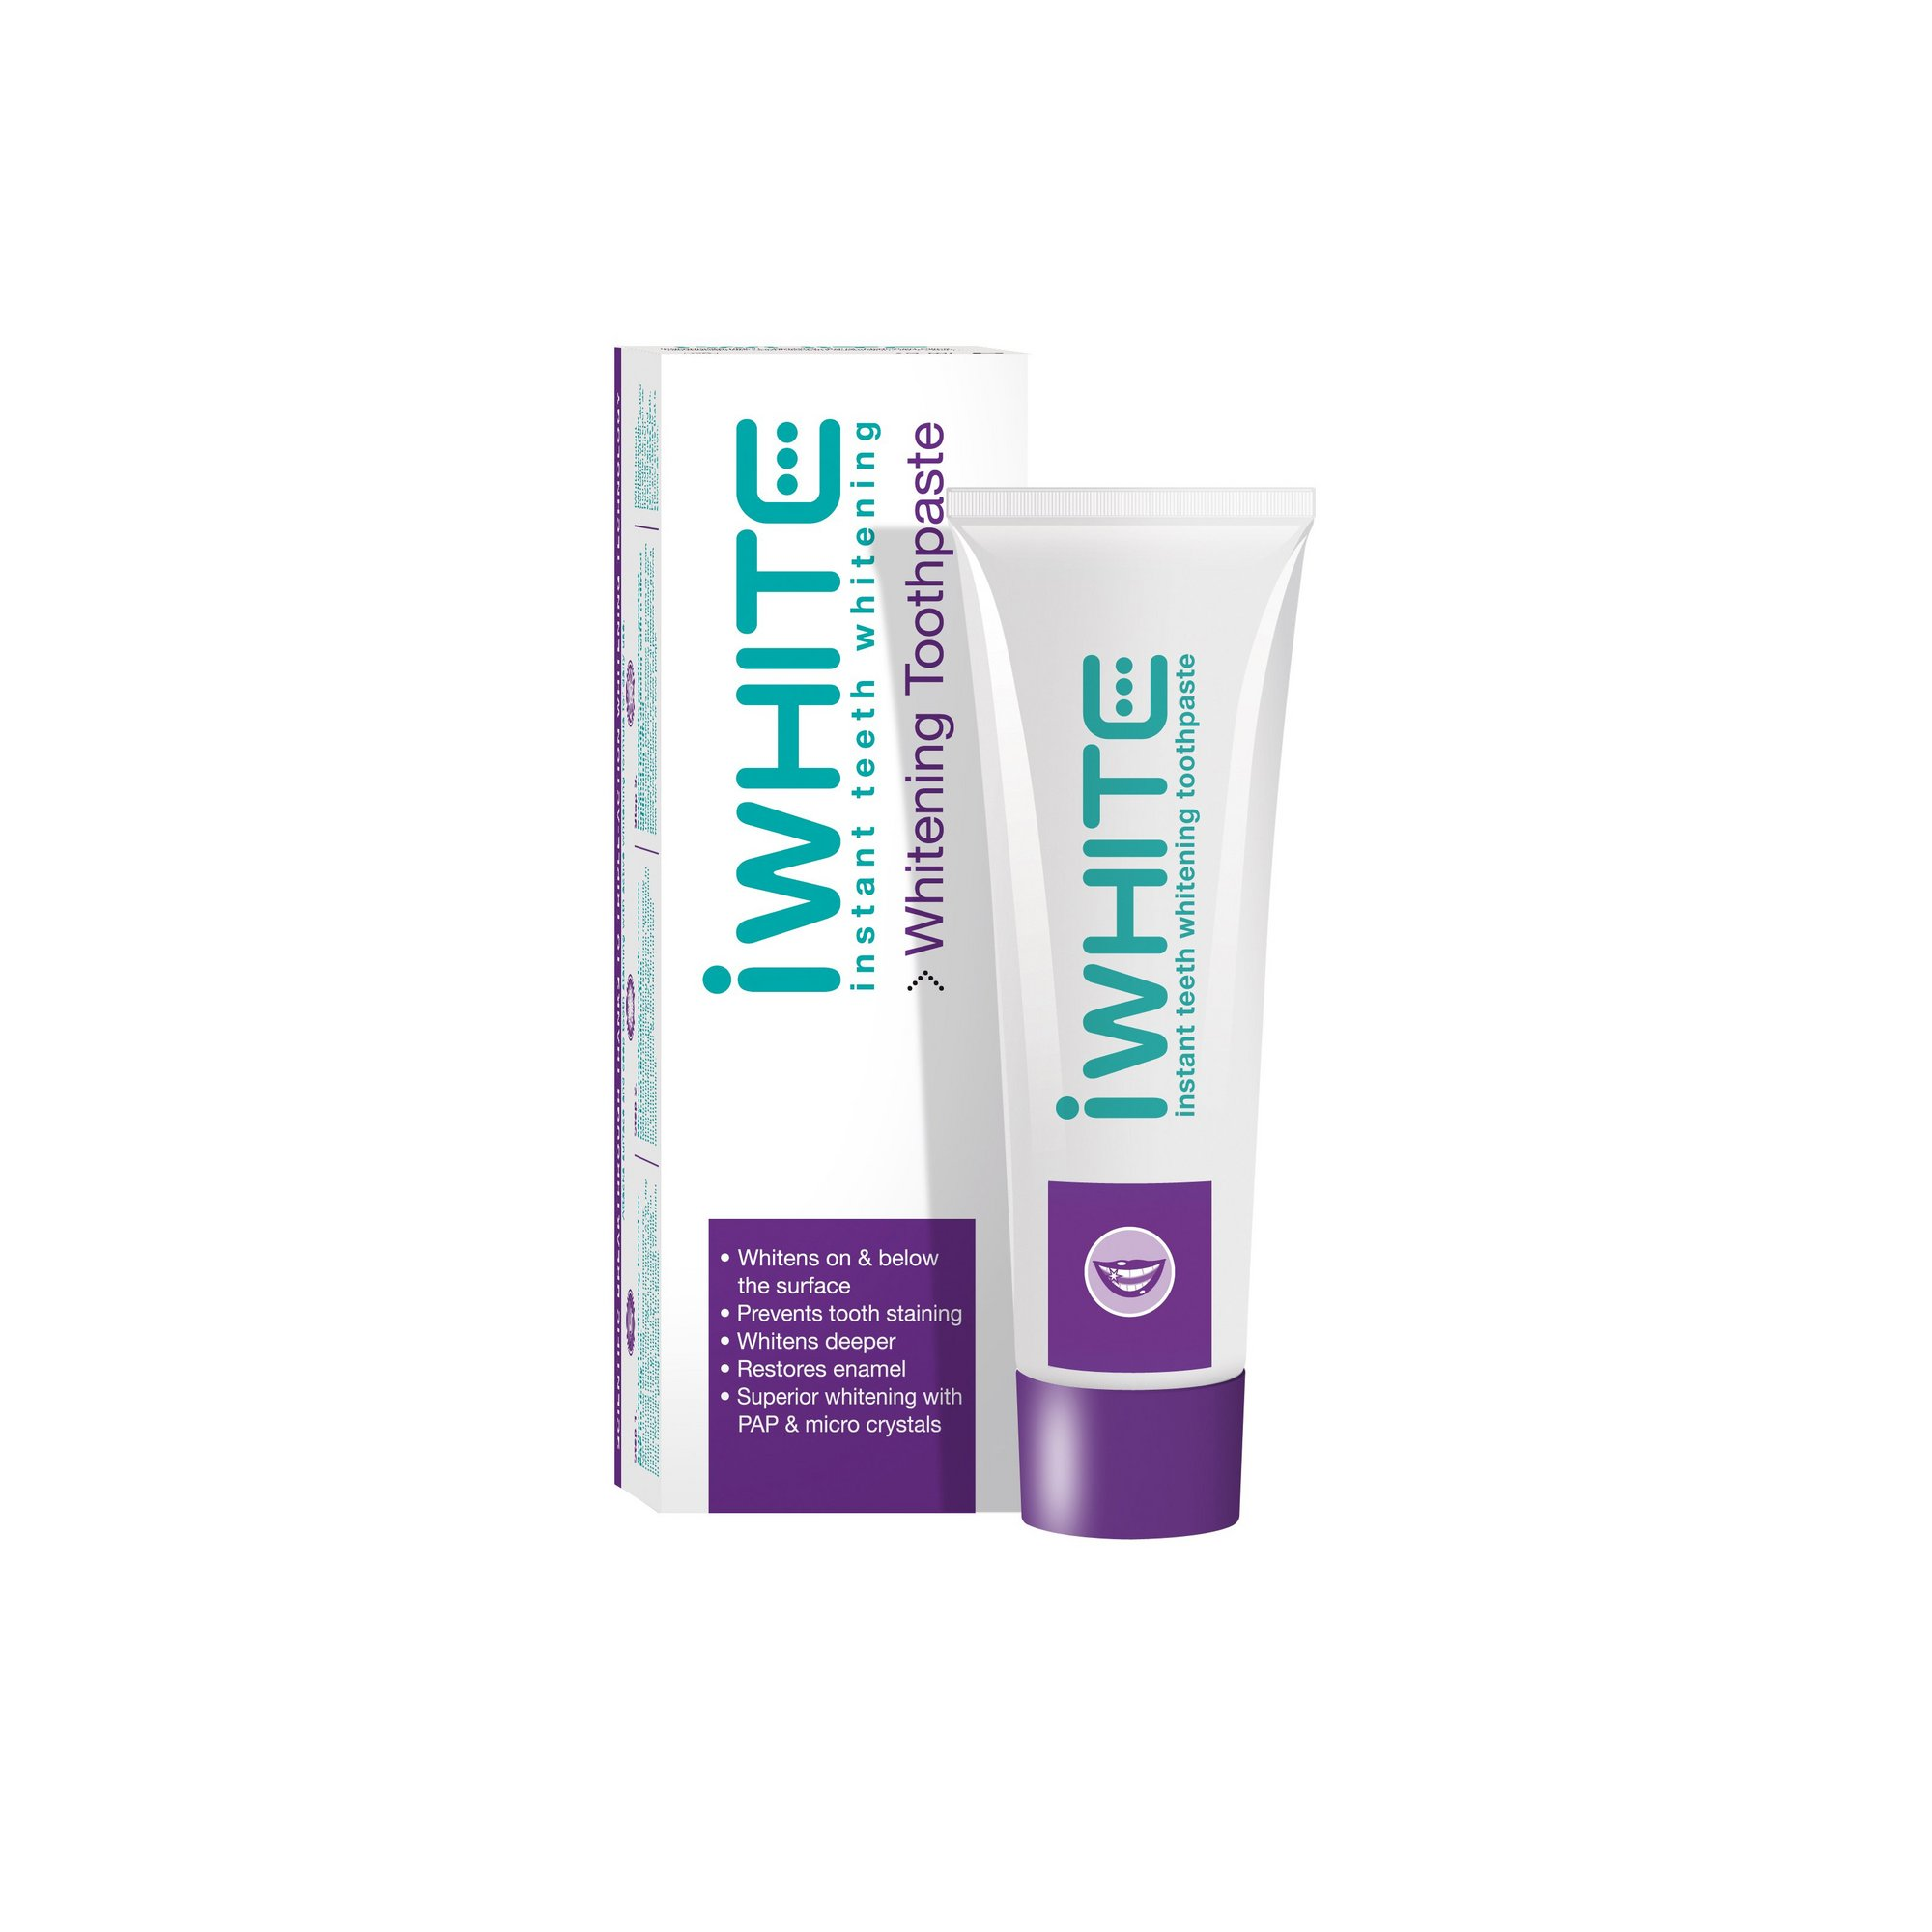 Image of iWhite Toothpaste Pack of 2